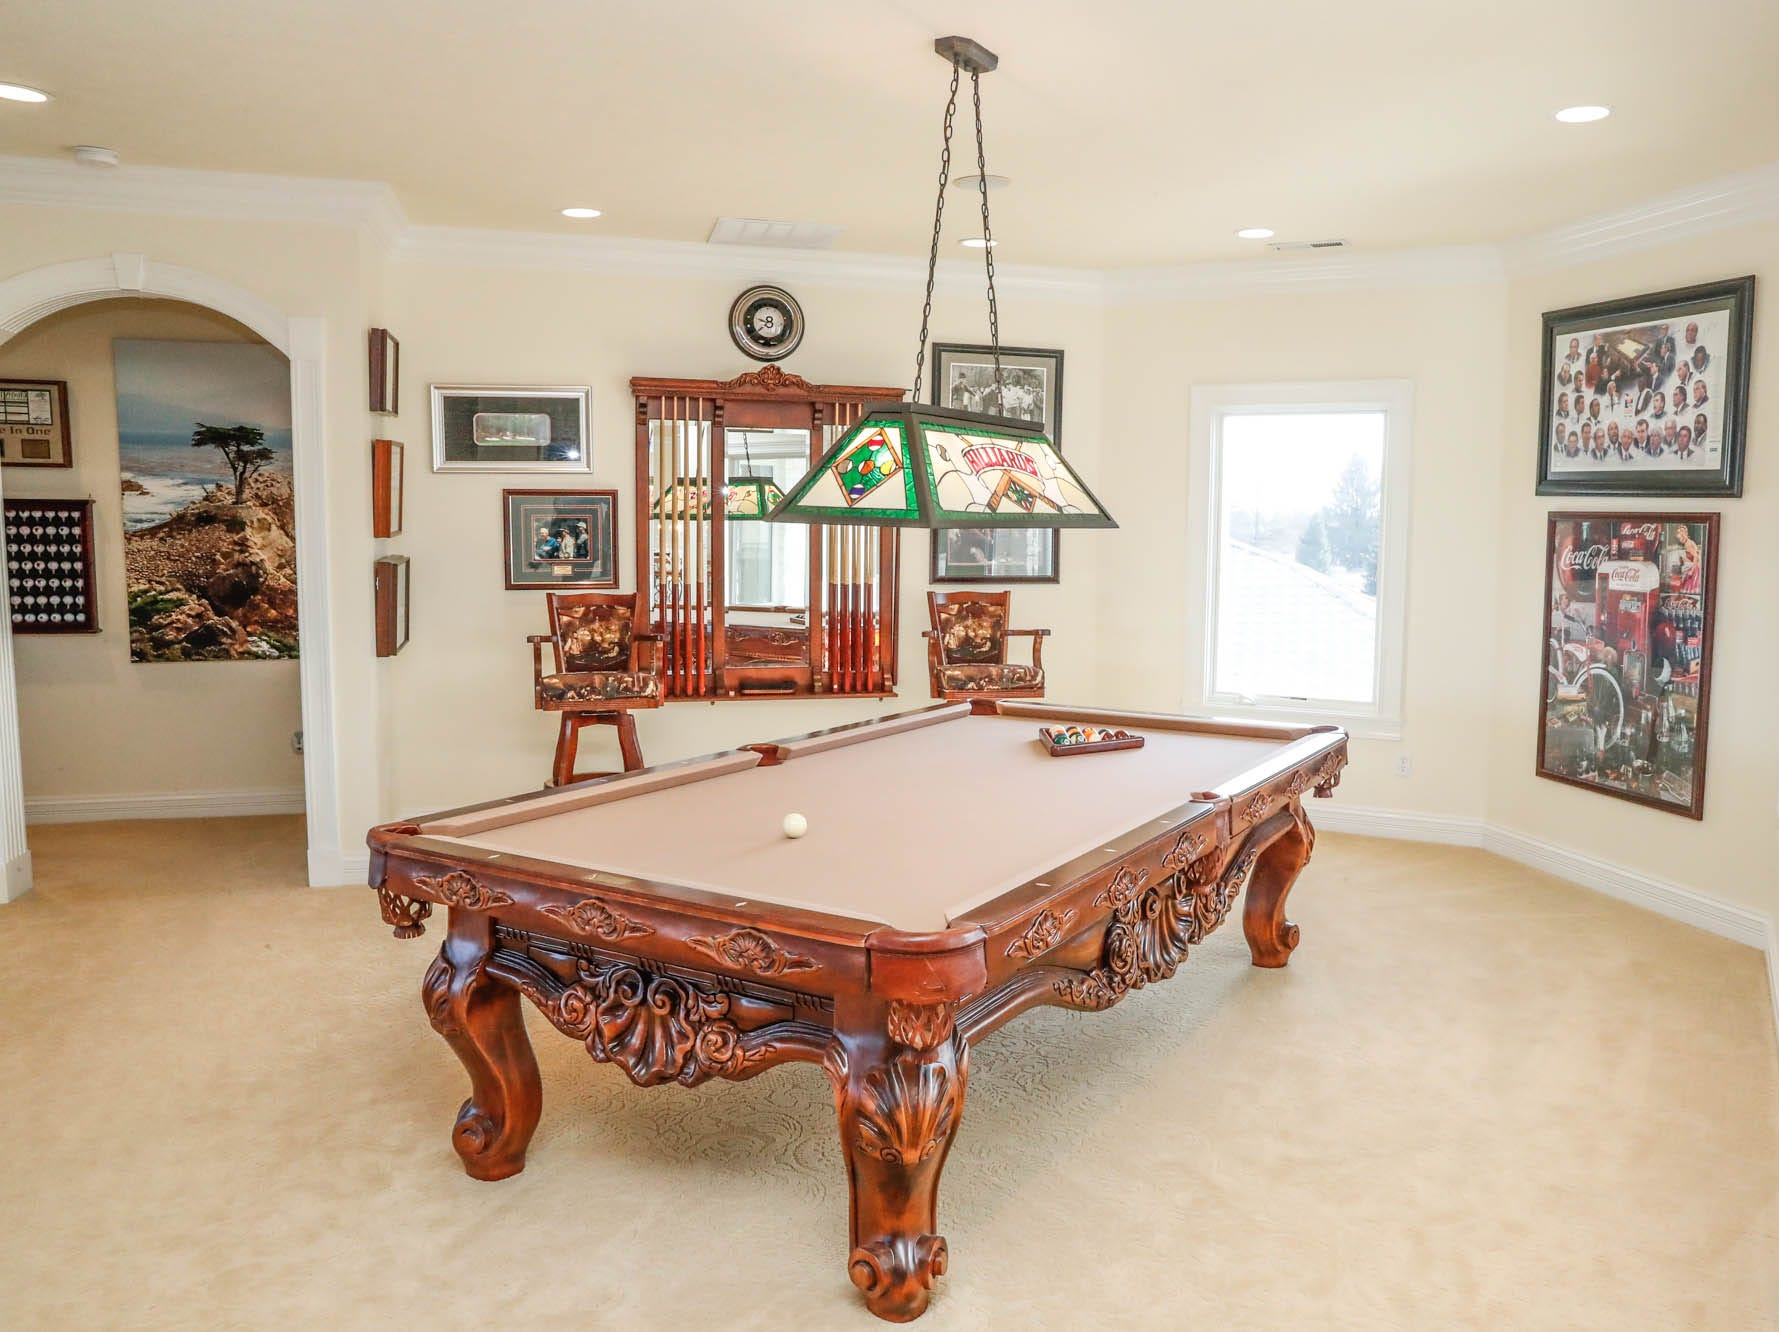 An open loft provides a second-floor billiards space at a Greenwood home up for sale at 1216 Stone Ridge Court, Greenwood, Ind. on Wednesday, Jan. 30, 2019. The home features 8,234 square feet, four bedrooms, two master suites, a 10 car garage, and an exercise room.